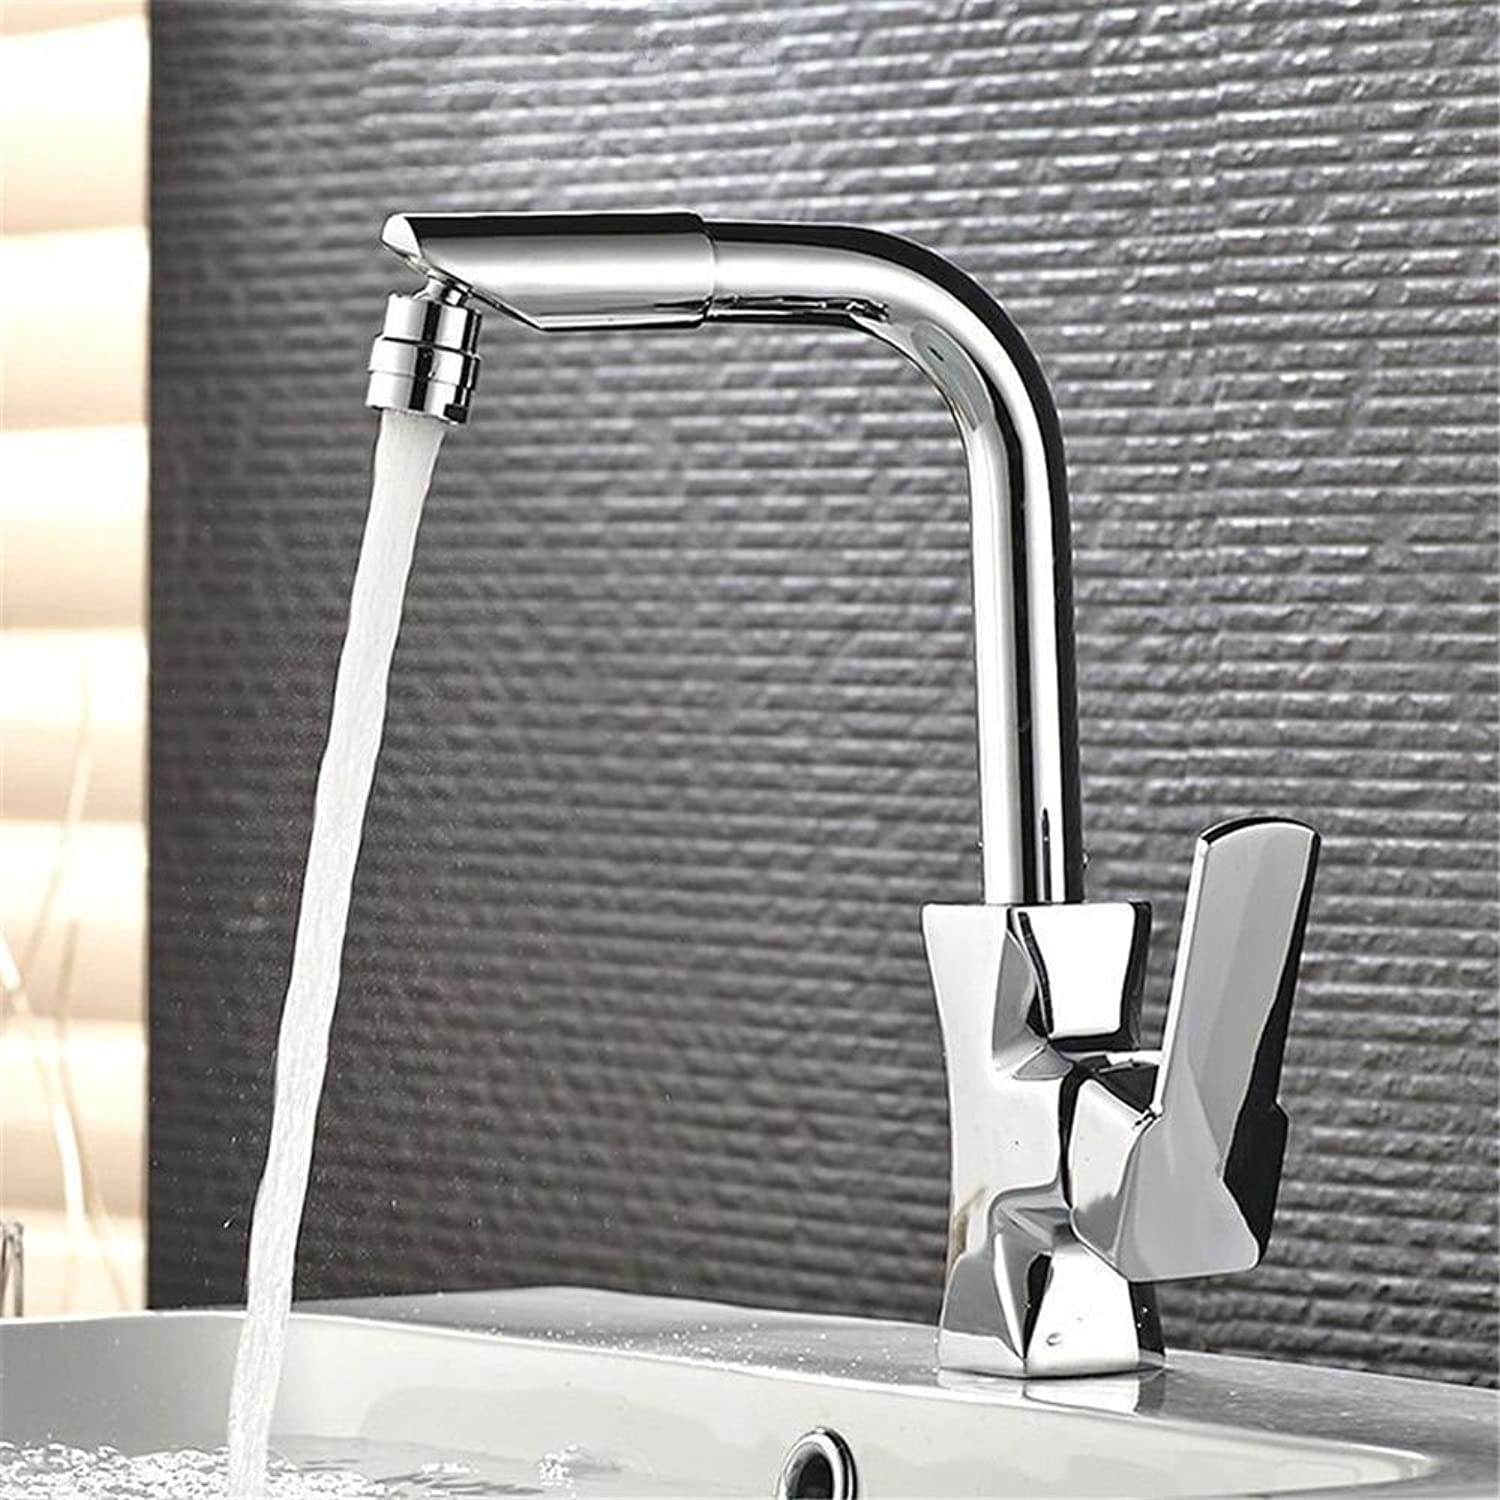 Commercial Kitchen Faucet Stainless Steel Handle Pull Out Kitchen Sink Faucet Hot and Cold Basin Faucet can be Turned Freely to The Kitchen washbasin Double tap